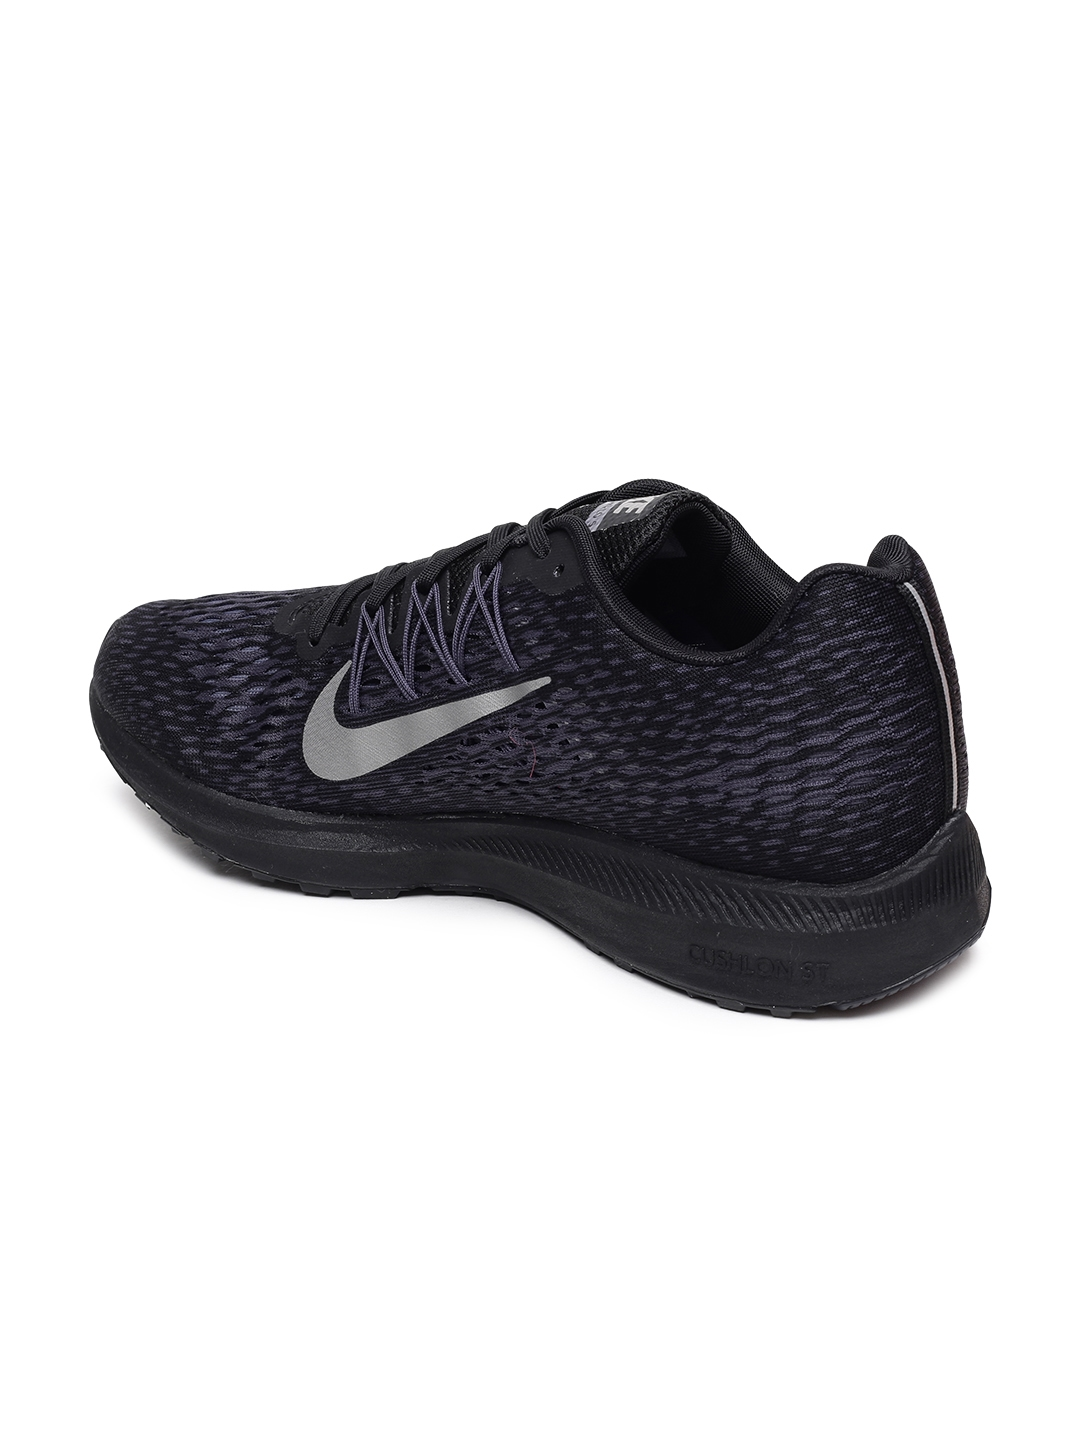 3cc73b30 Buy Nike Men Black Zoom Winflo 5 Running Shoes - Sports Shoes for ...